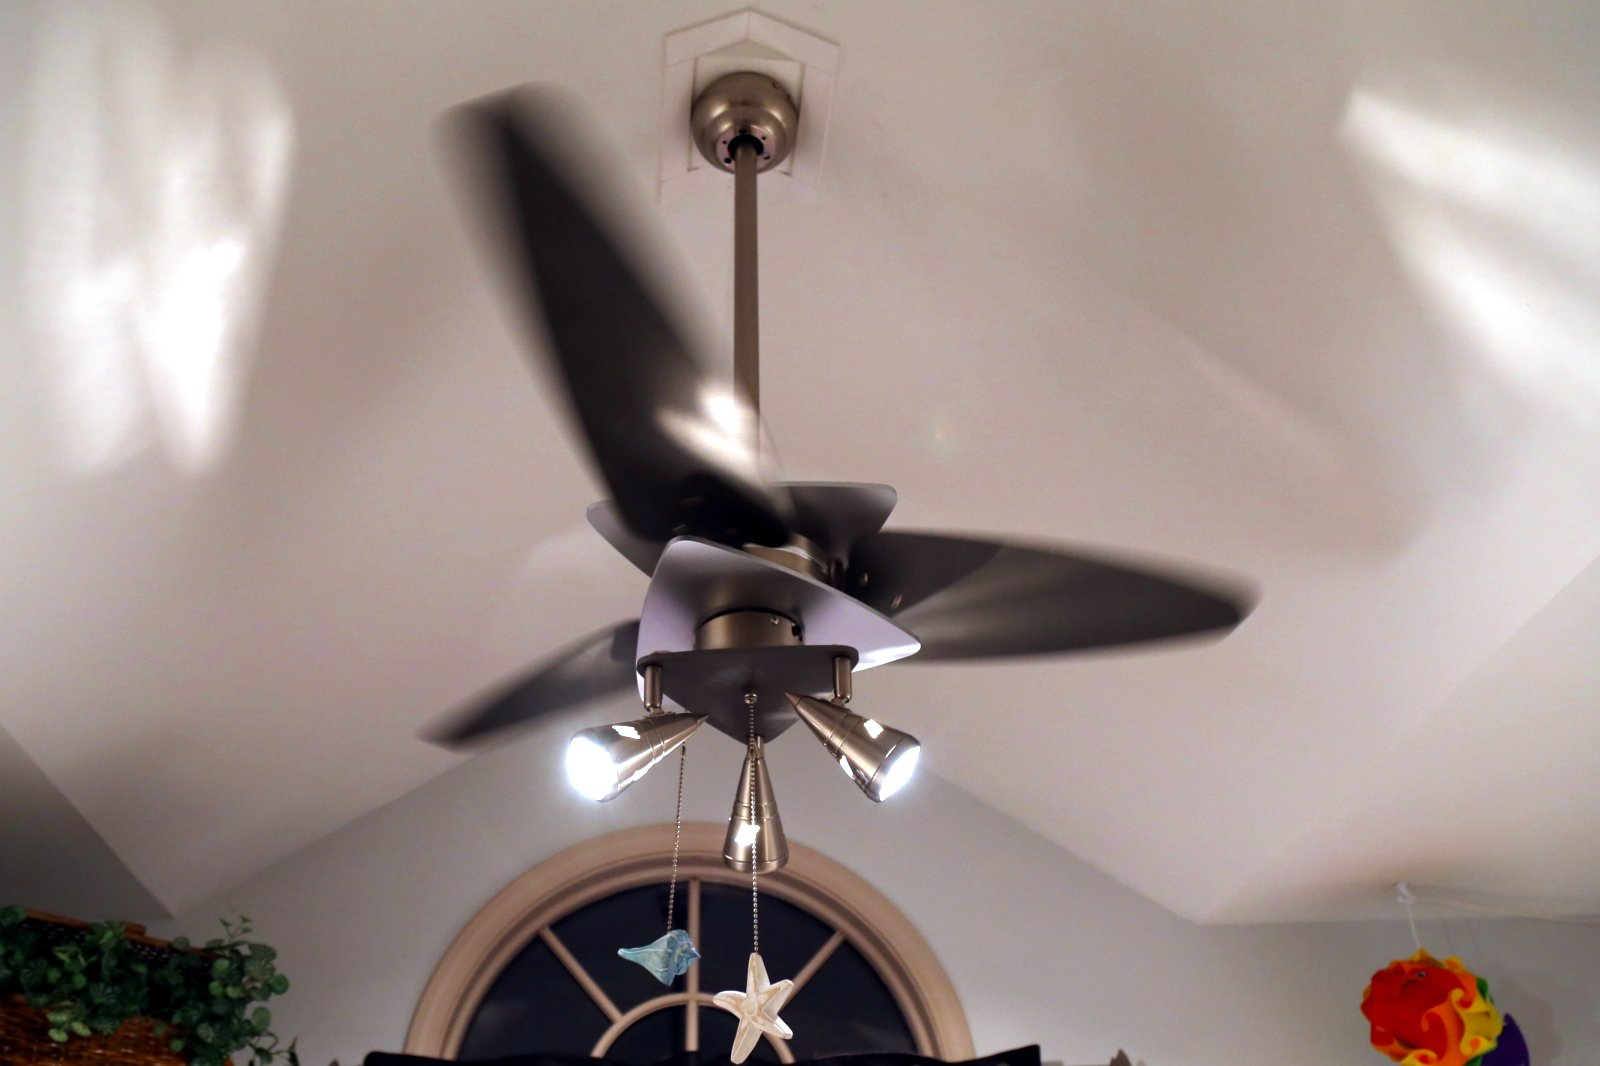 Ceiling Fan installer in Crofton